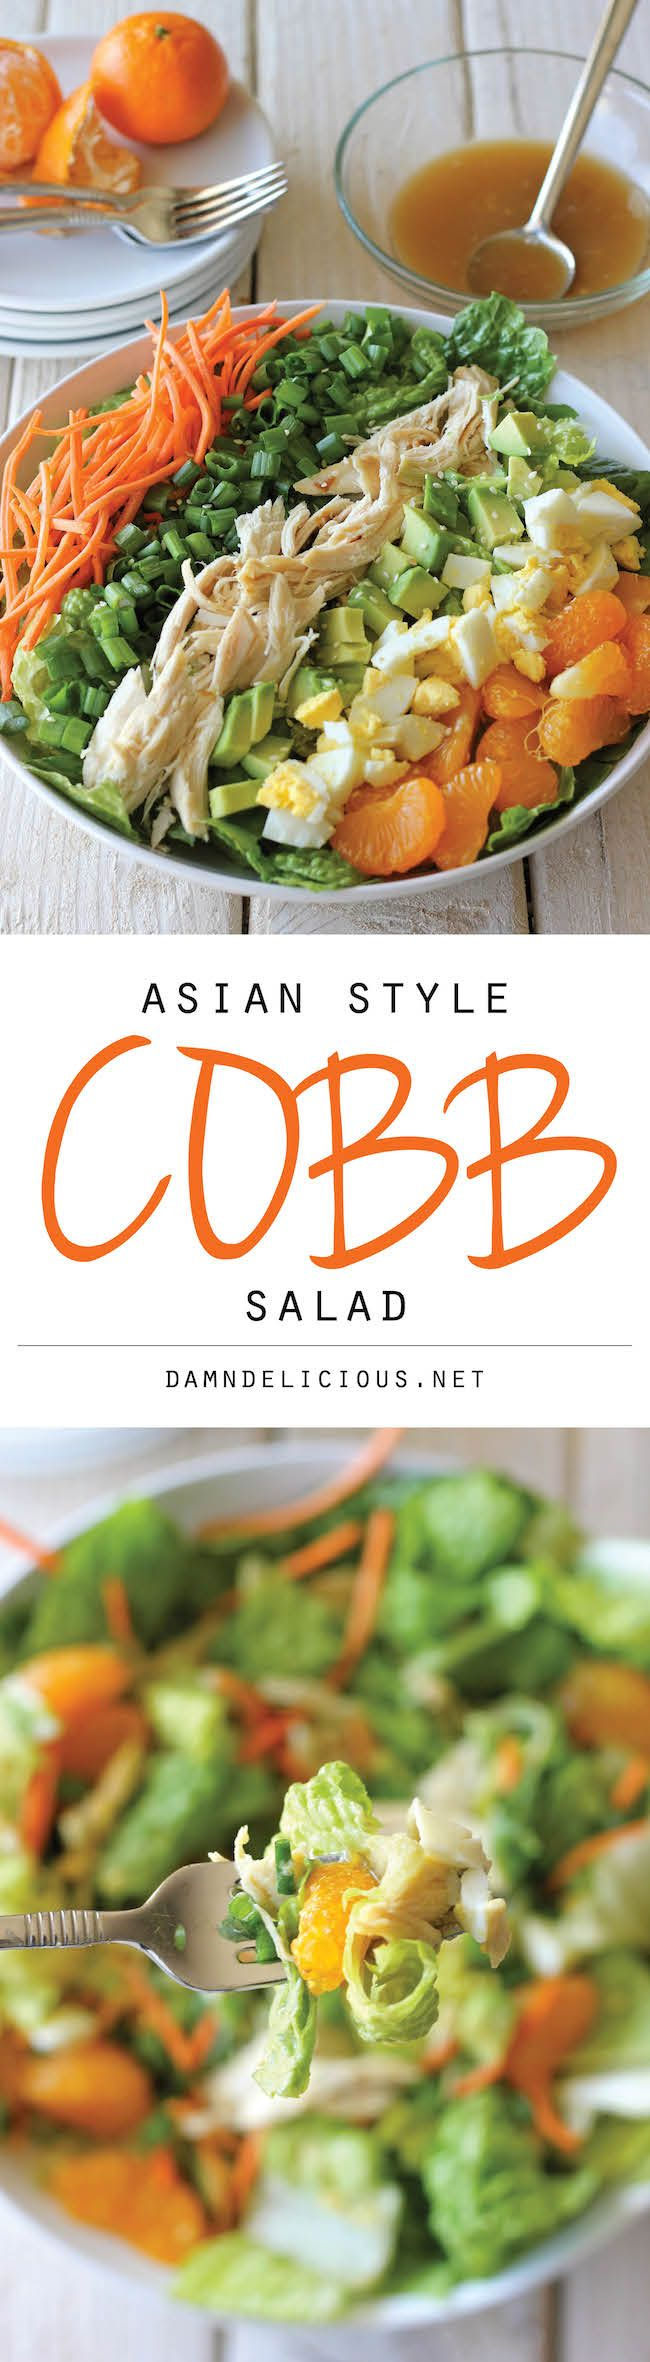 Asian-Style Cobb Salad: if you feel stuffed fuller than the proverbial turkey, this is the antidote! Looks so light and refreshing -- a perfect wintertime salad. Try this with fresh oranges, and use tamari and a little stevia or xylitol in the great sesame vinaigrette. (Good for leftover turkey, too!)